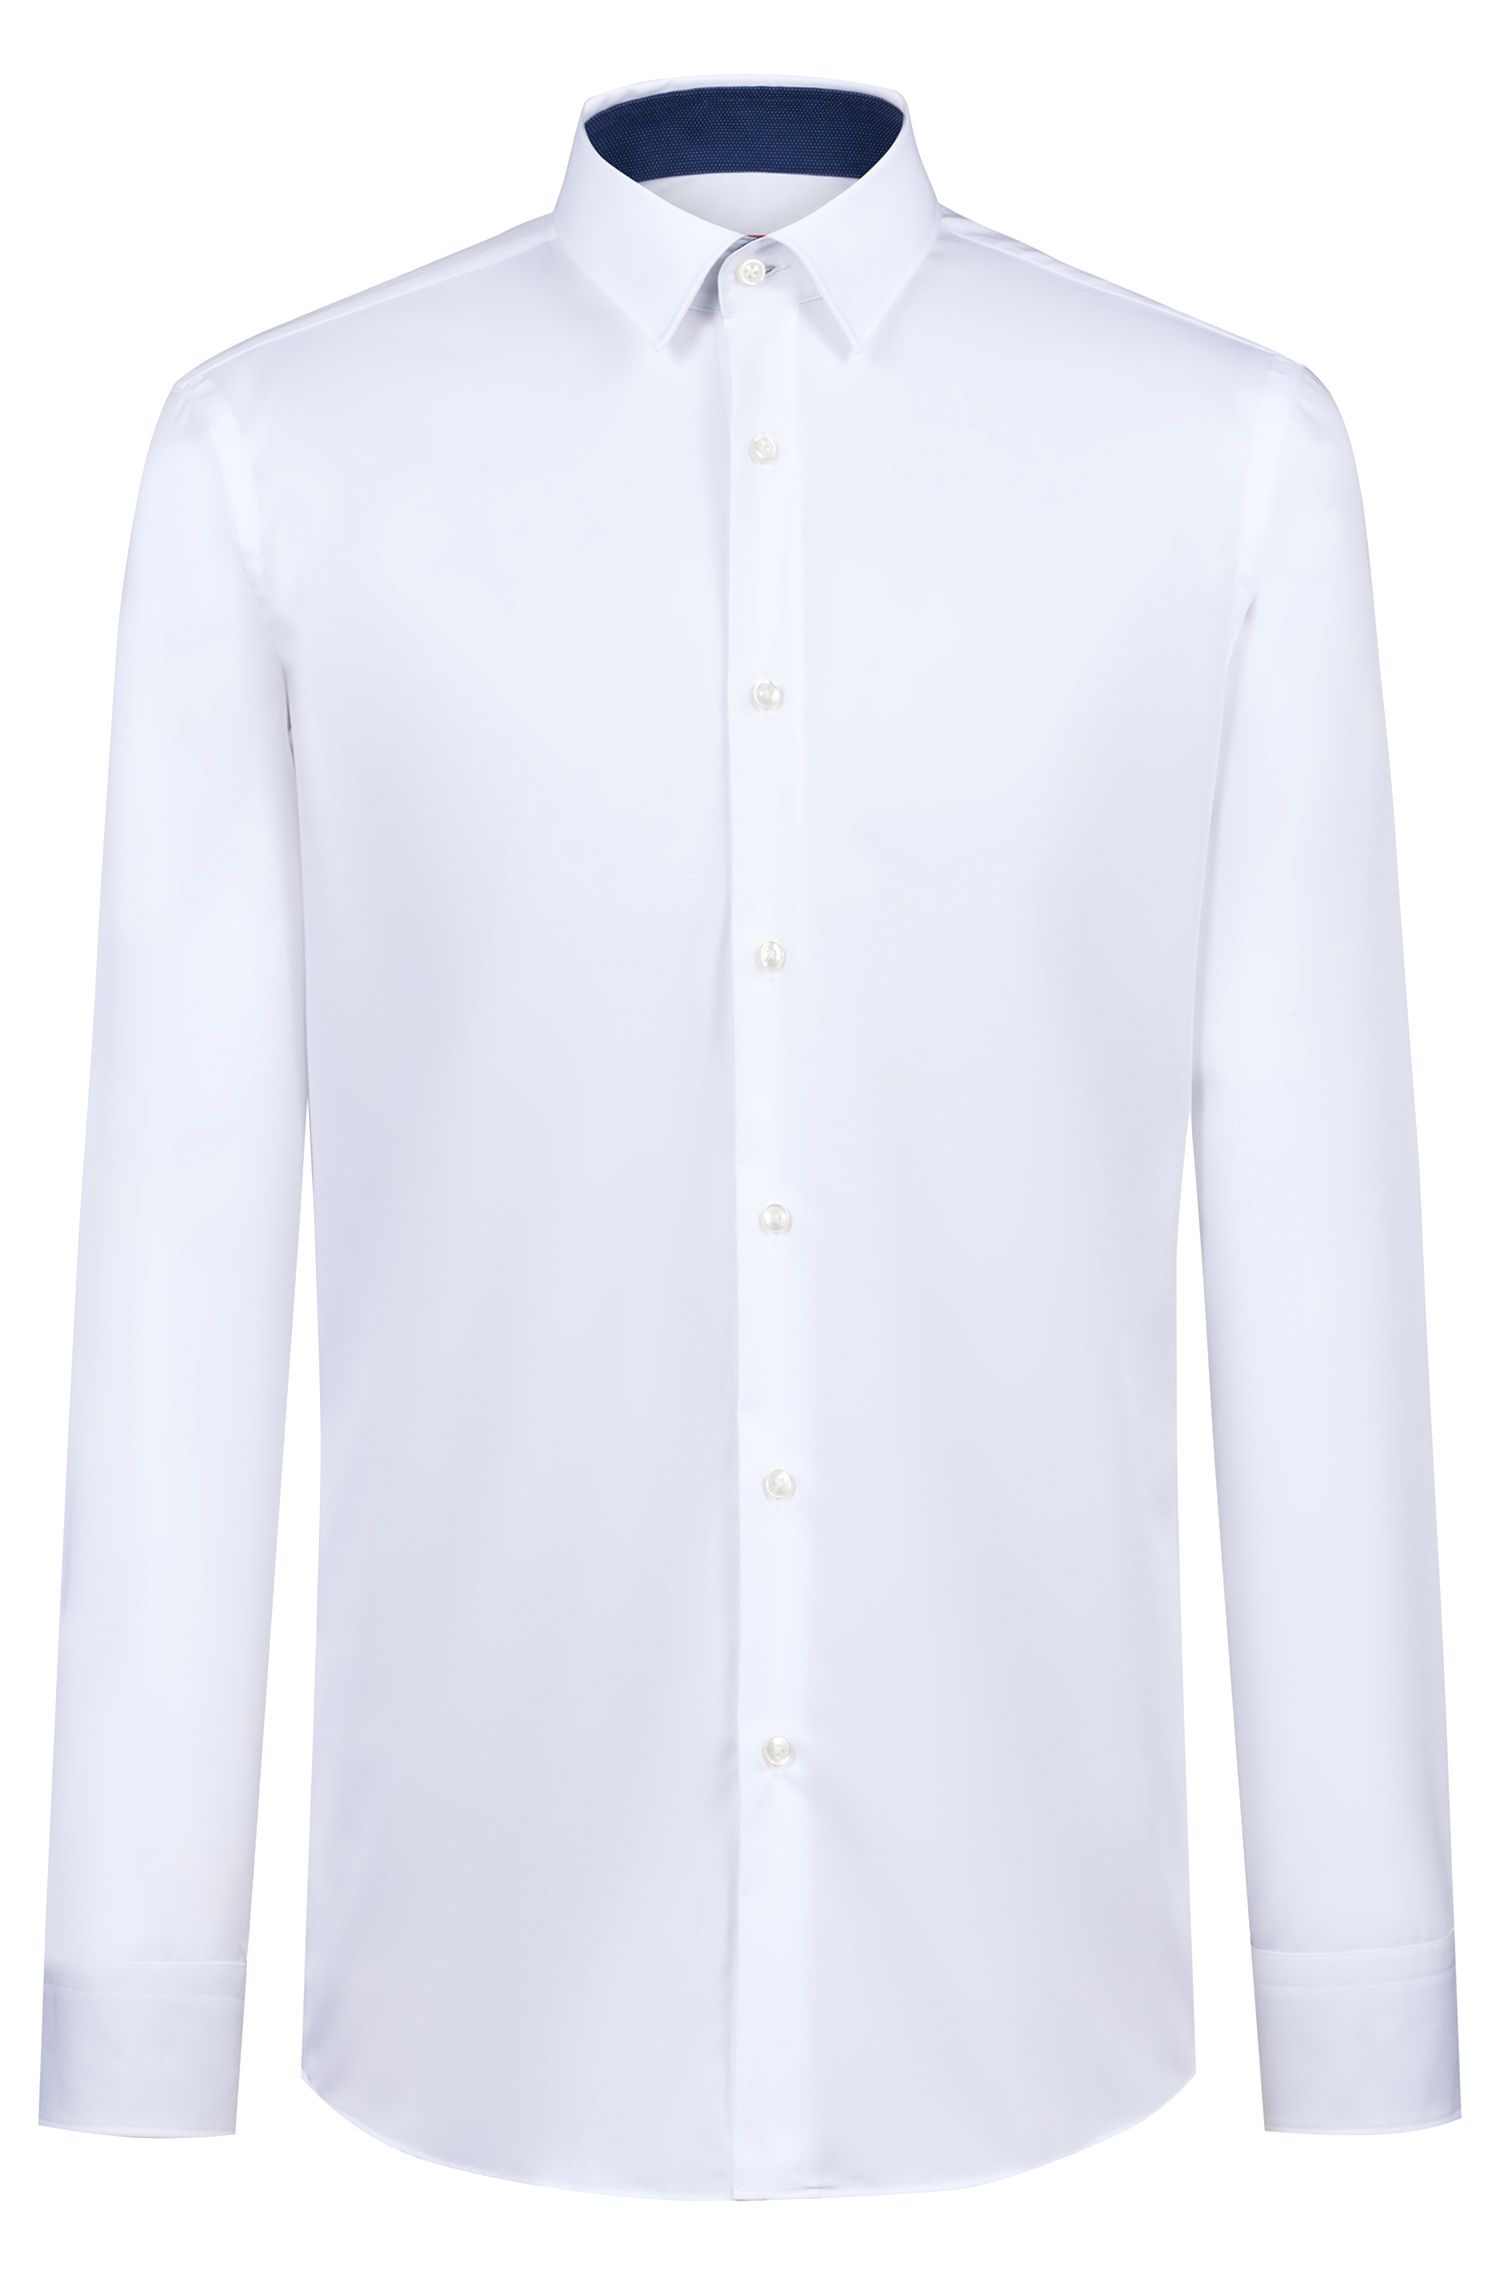 Regular-fit shirt in cotton poplin with contrast trims, White